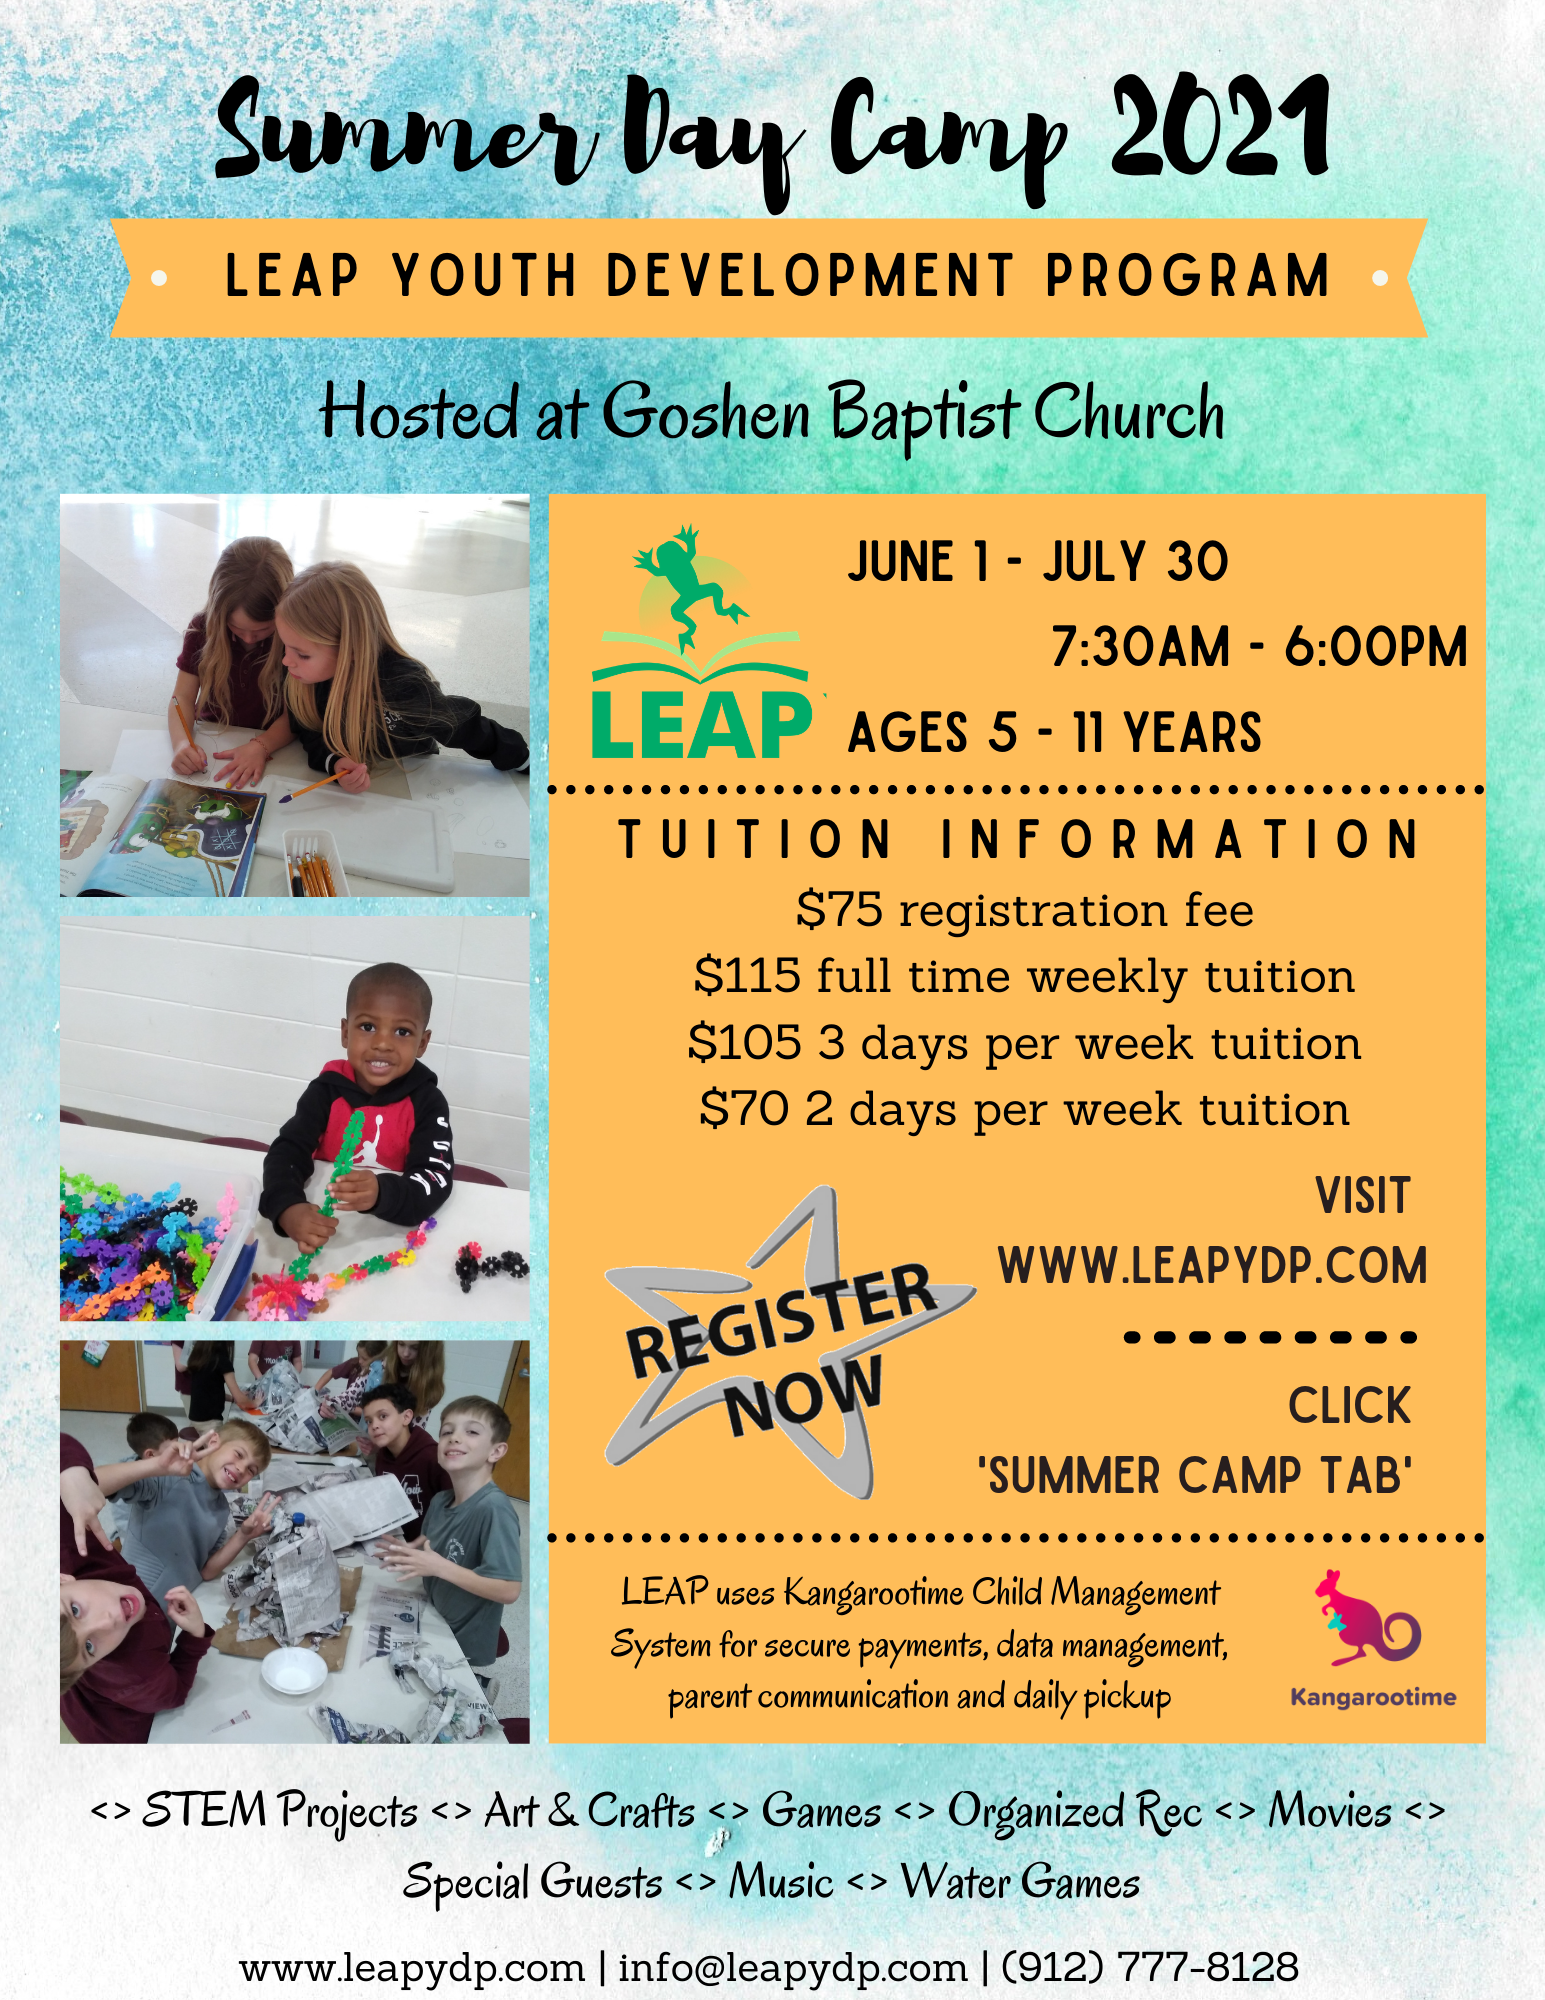 LEAP Summer Camp 2021